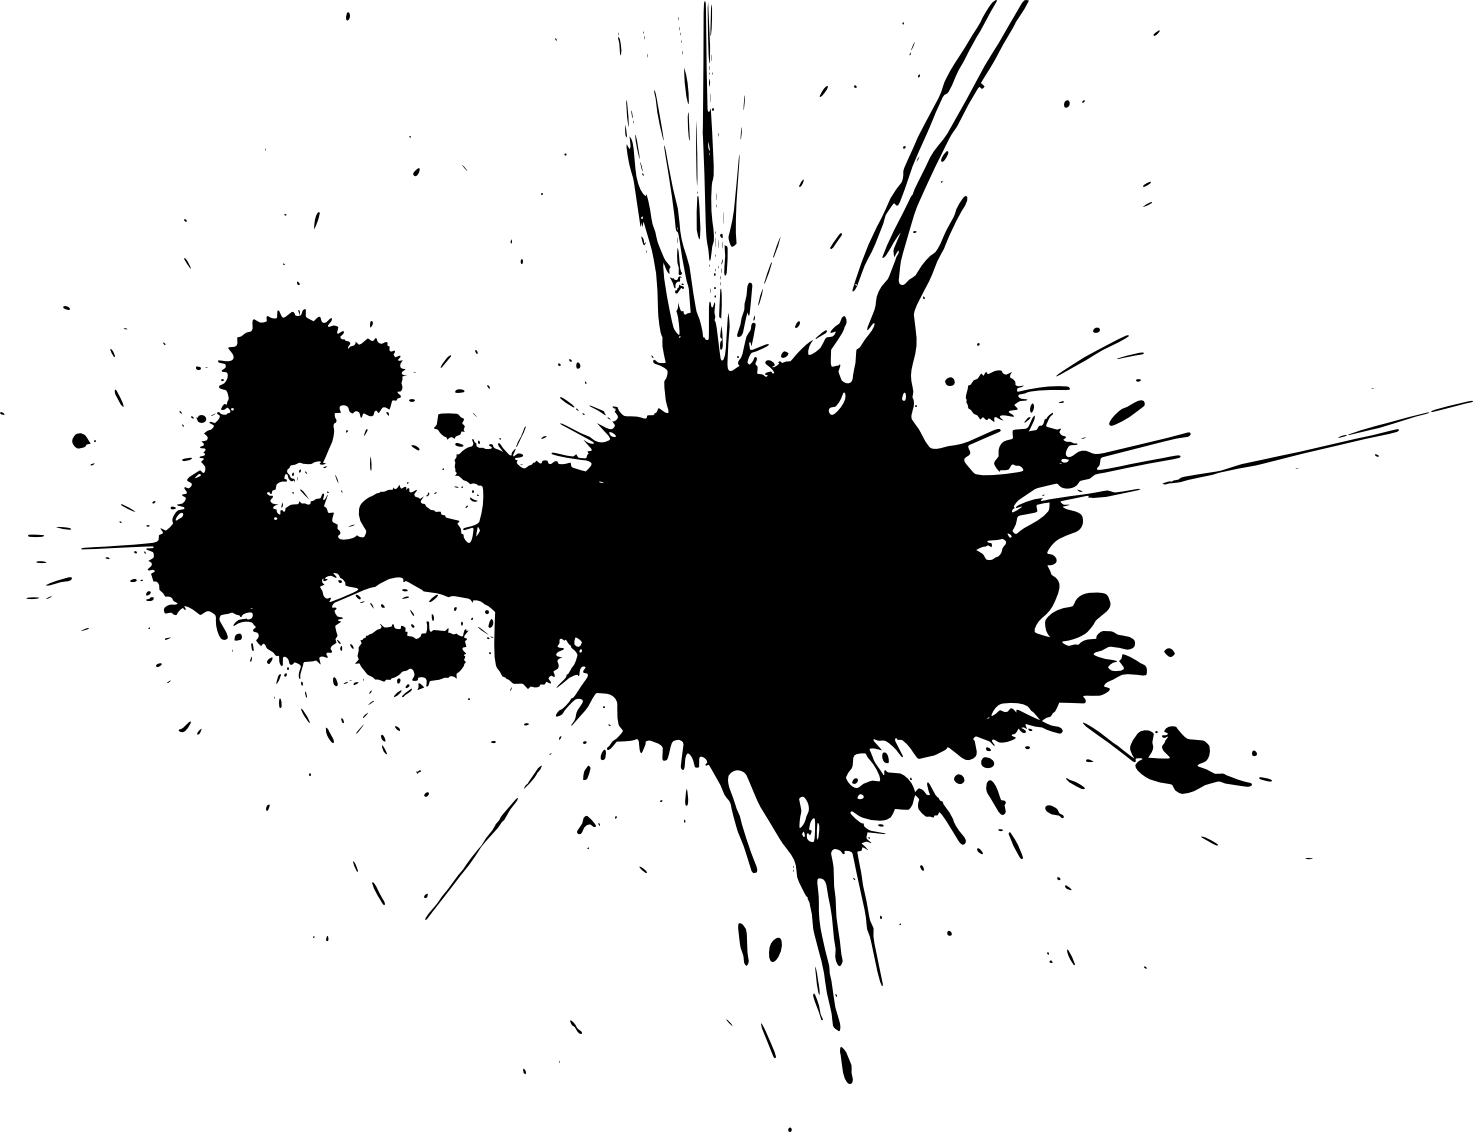 Black Paint Splash Png | www.pixshark.com - Images ...